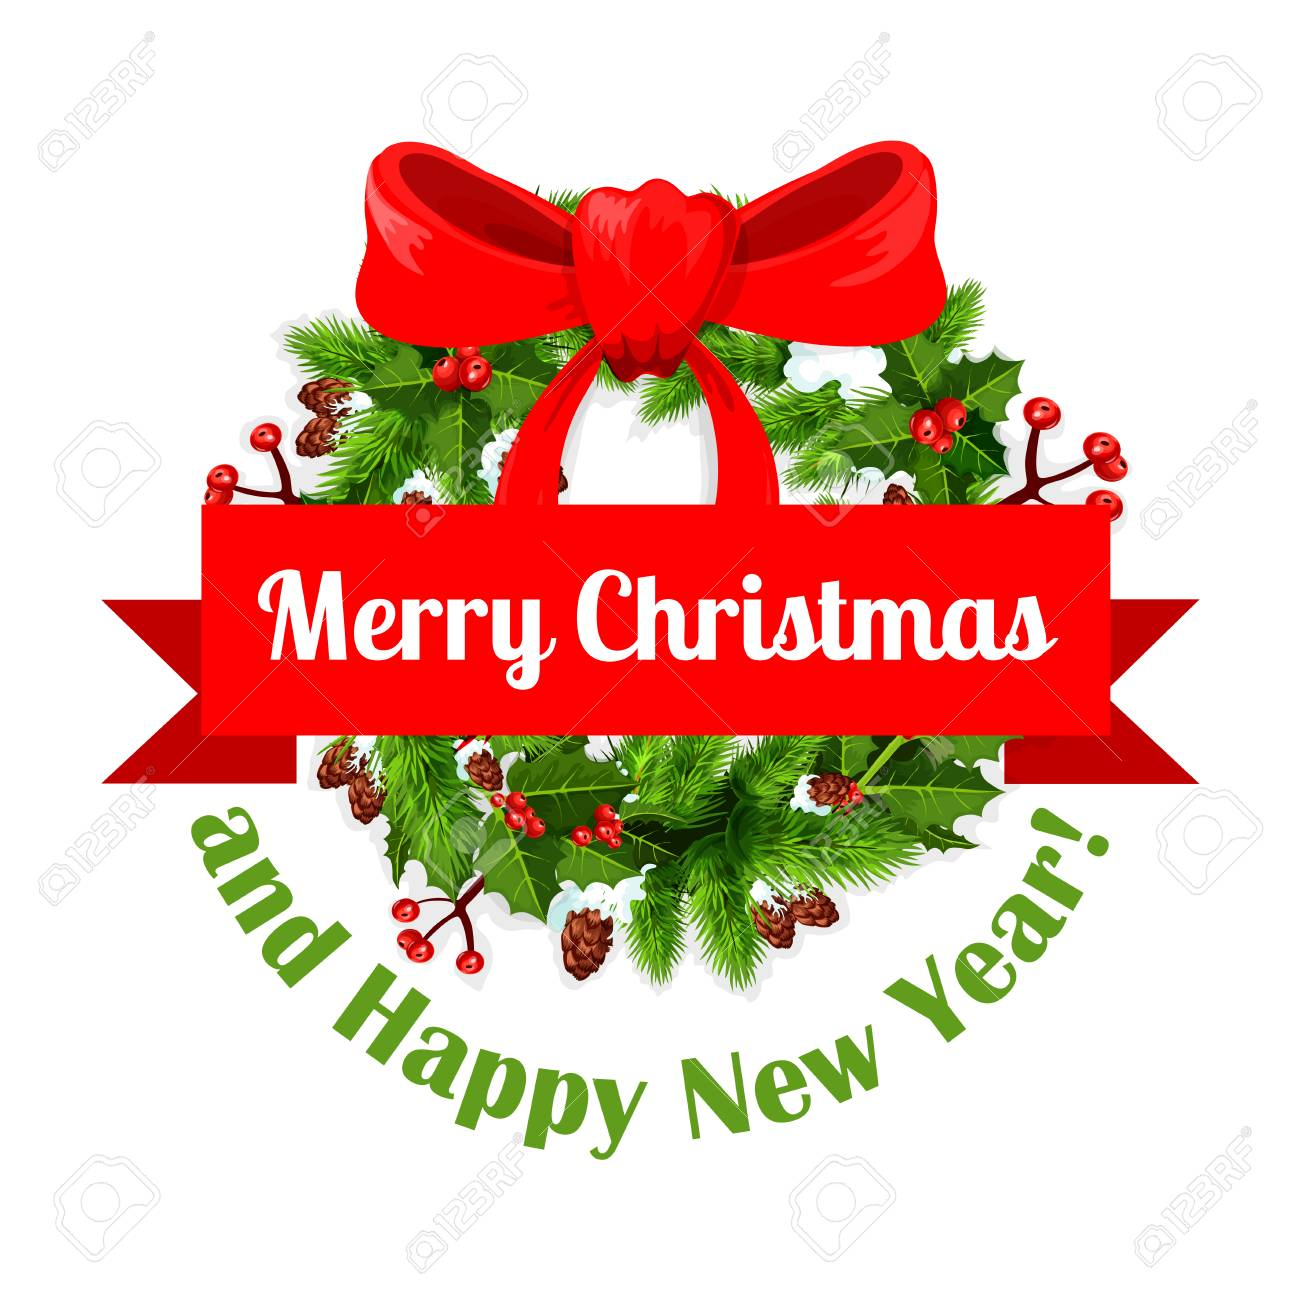 merry christmas banner royalty free cliparts vectors and stock illustration image 88858501 merry christmas banner